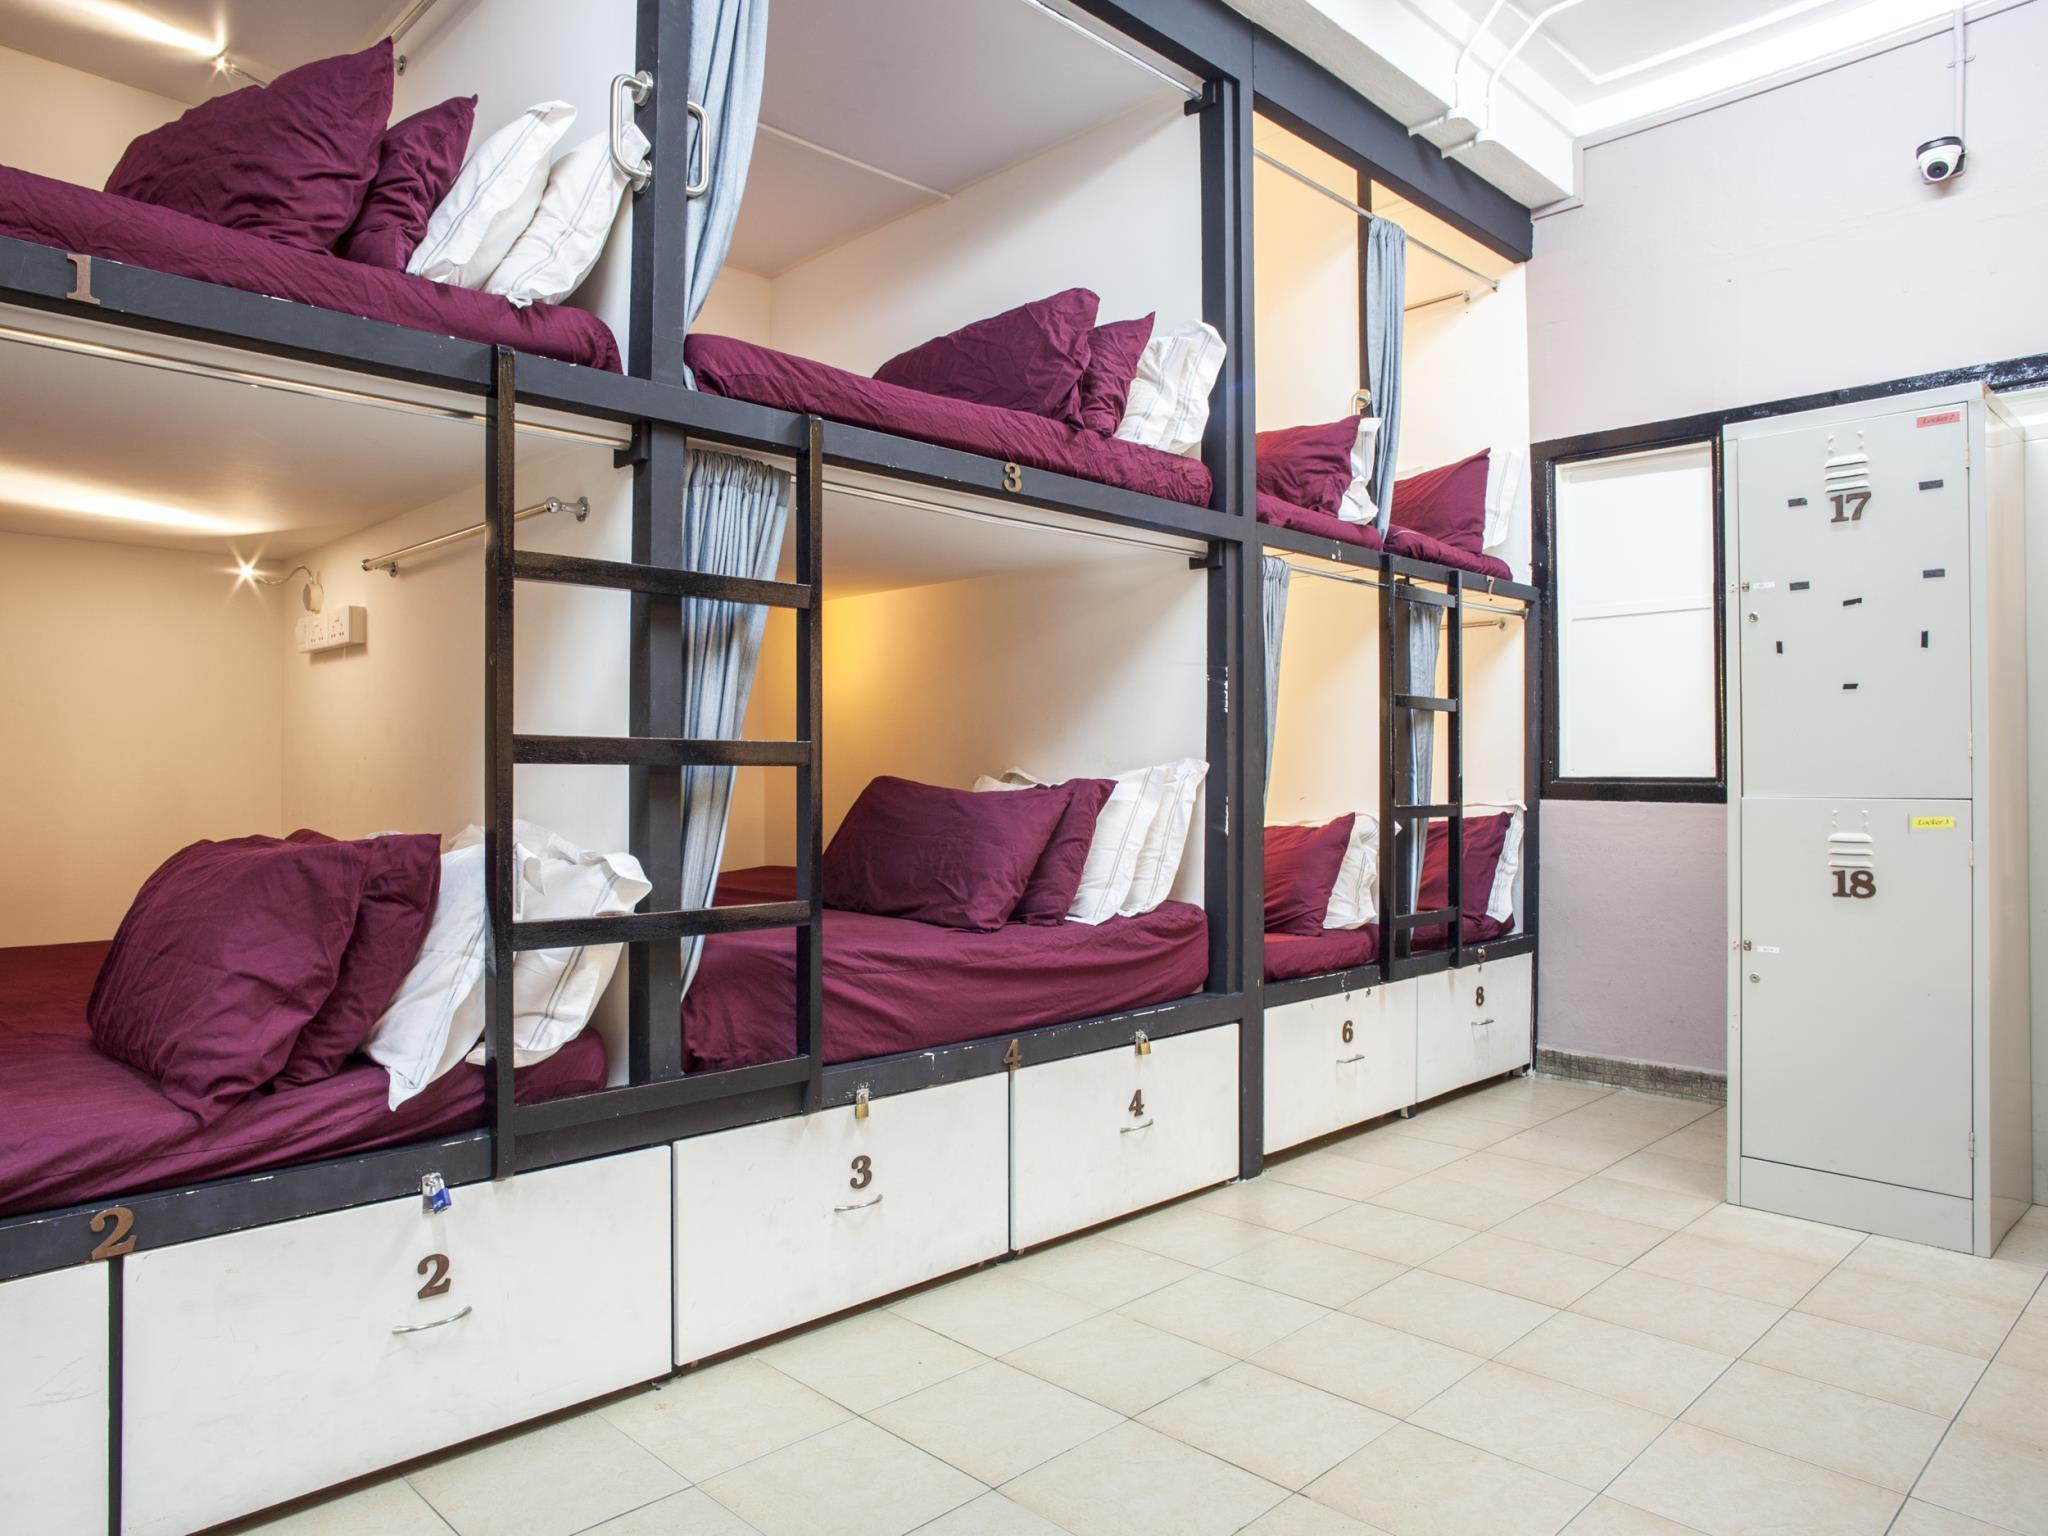 Capsule Bed in Mixed Dormitory Room